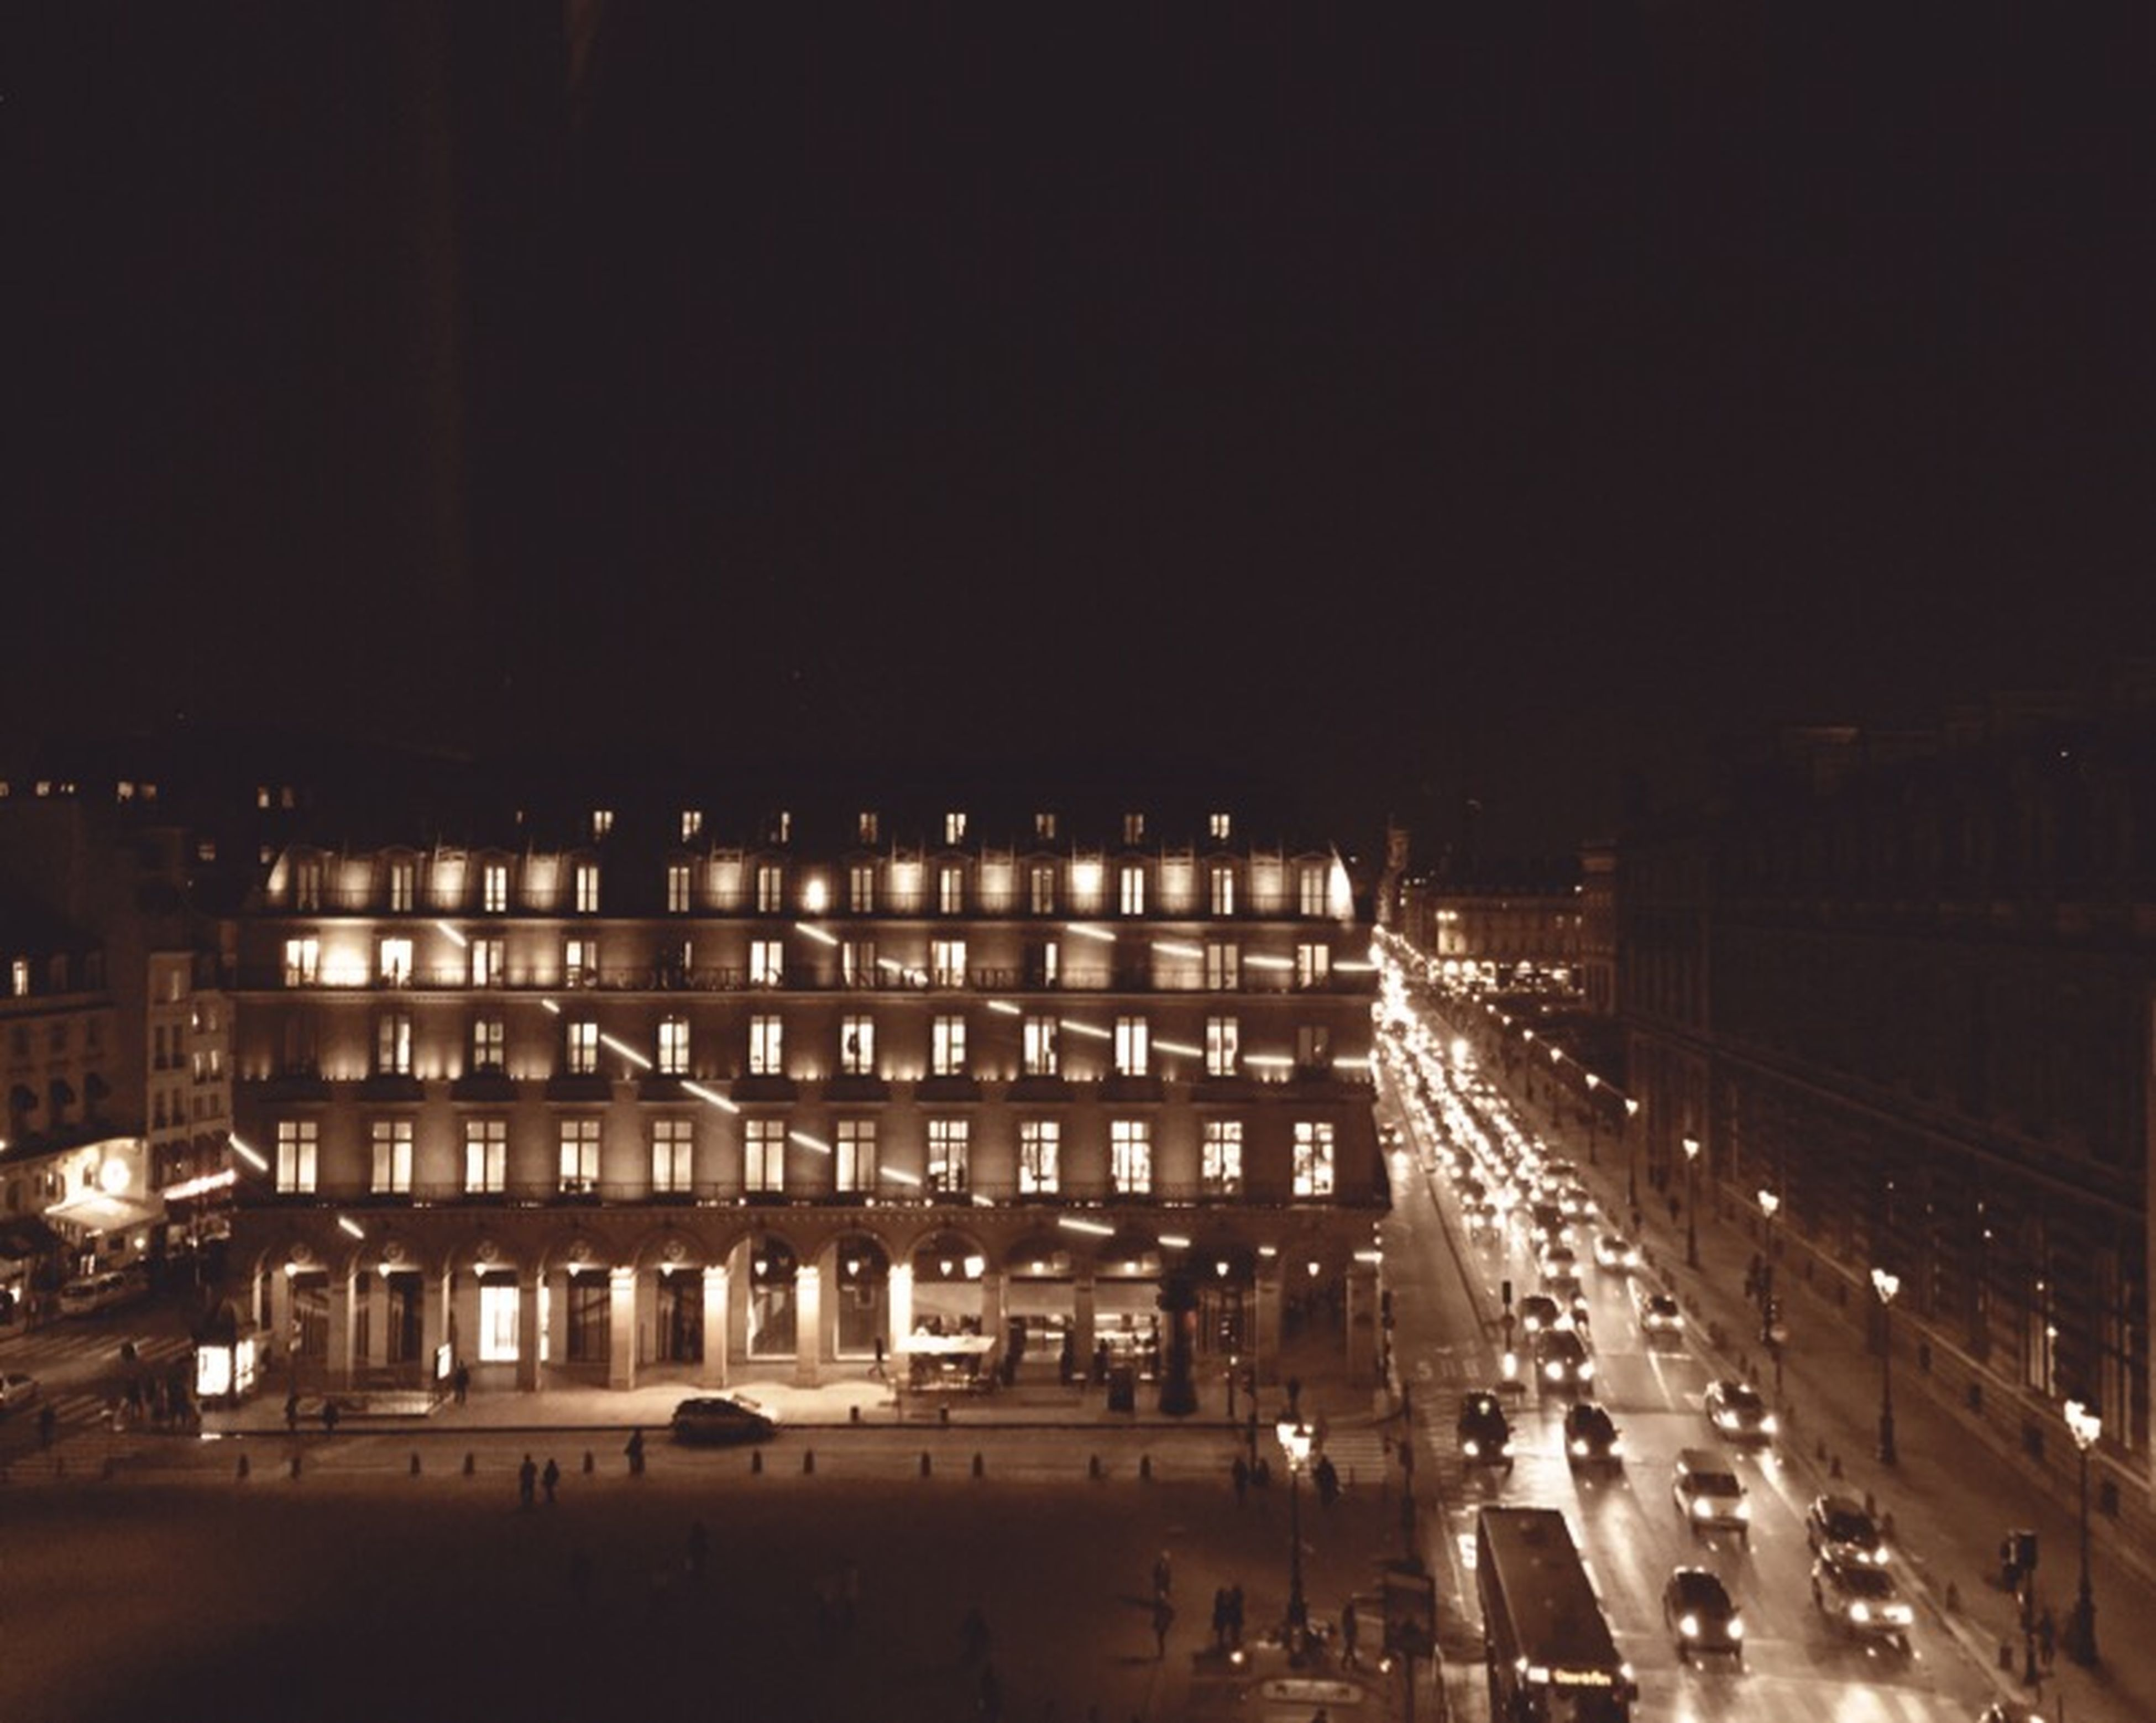 illuminated, night, architecture, built structure, city, building exterior, transportation, city life, street, road, high angle view, clear sky, travel, large group of people, incidental people, railroad station, outdoors, copy space, mode of transport